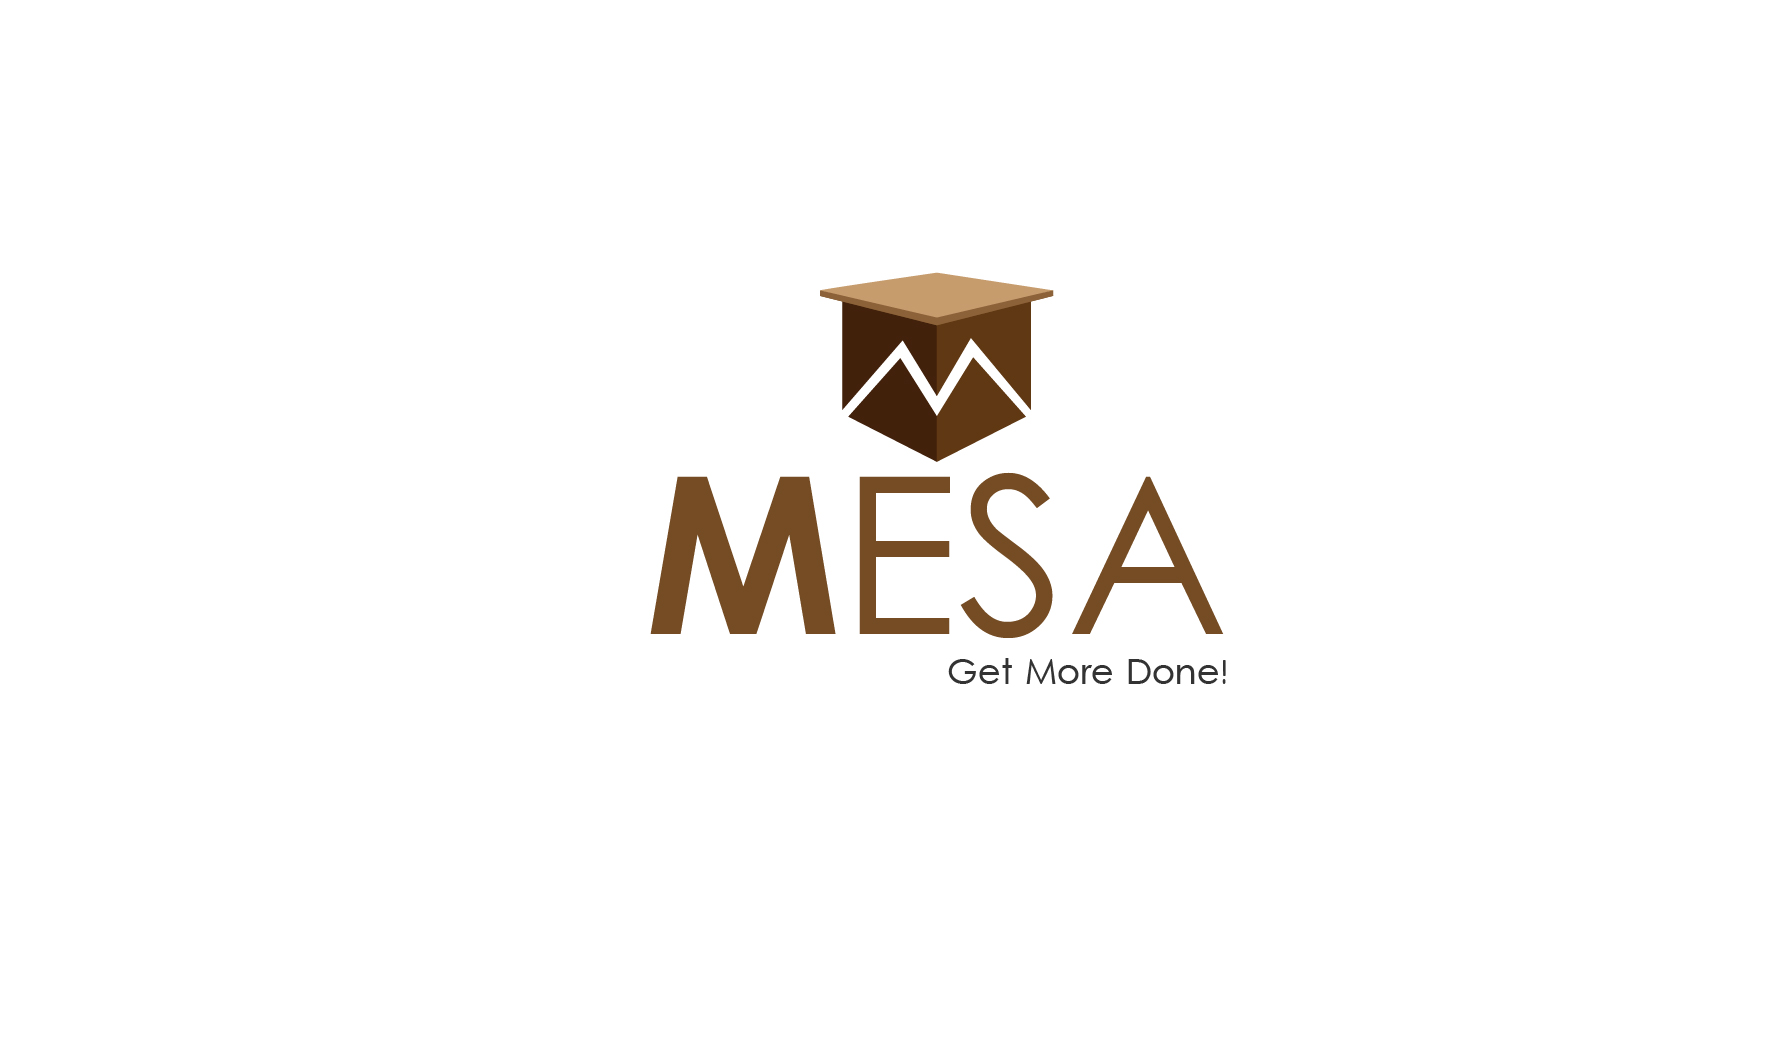 Logo Design by 3draw - Entry No. 150 in the Logo Design Contest Logo Design for Mesa.